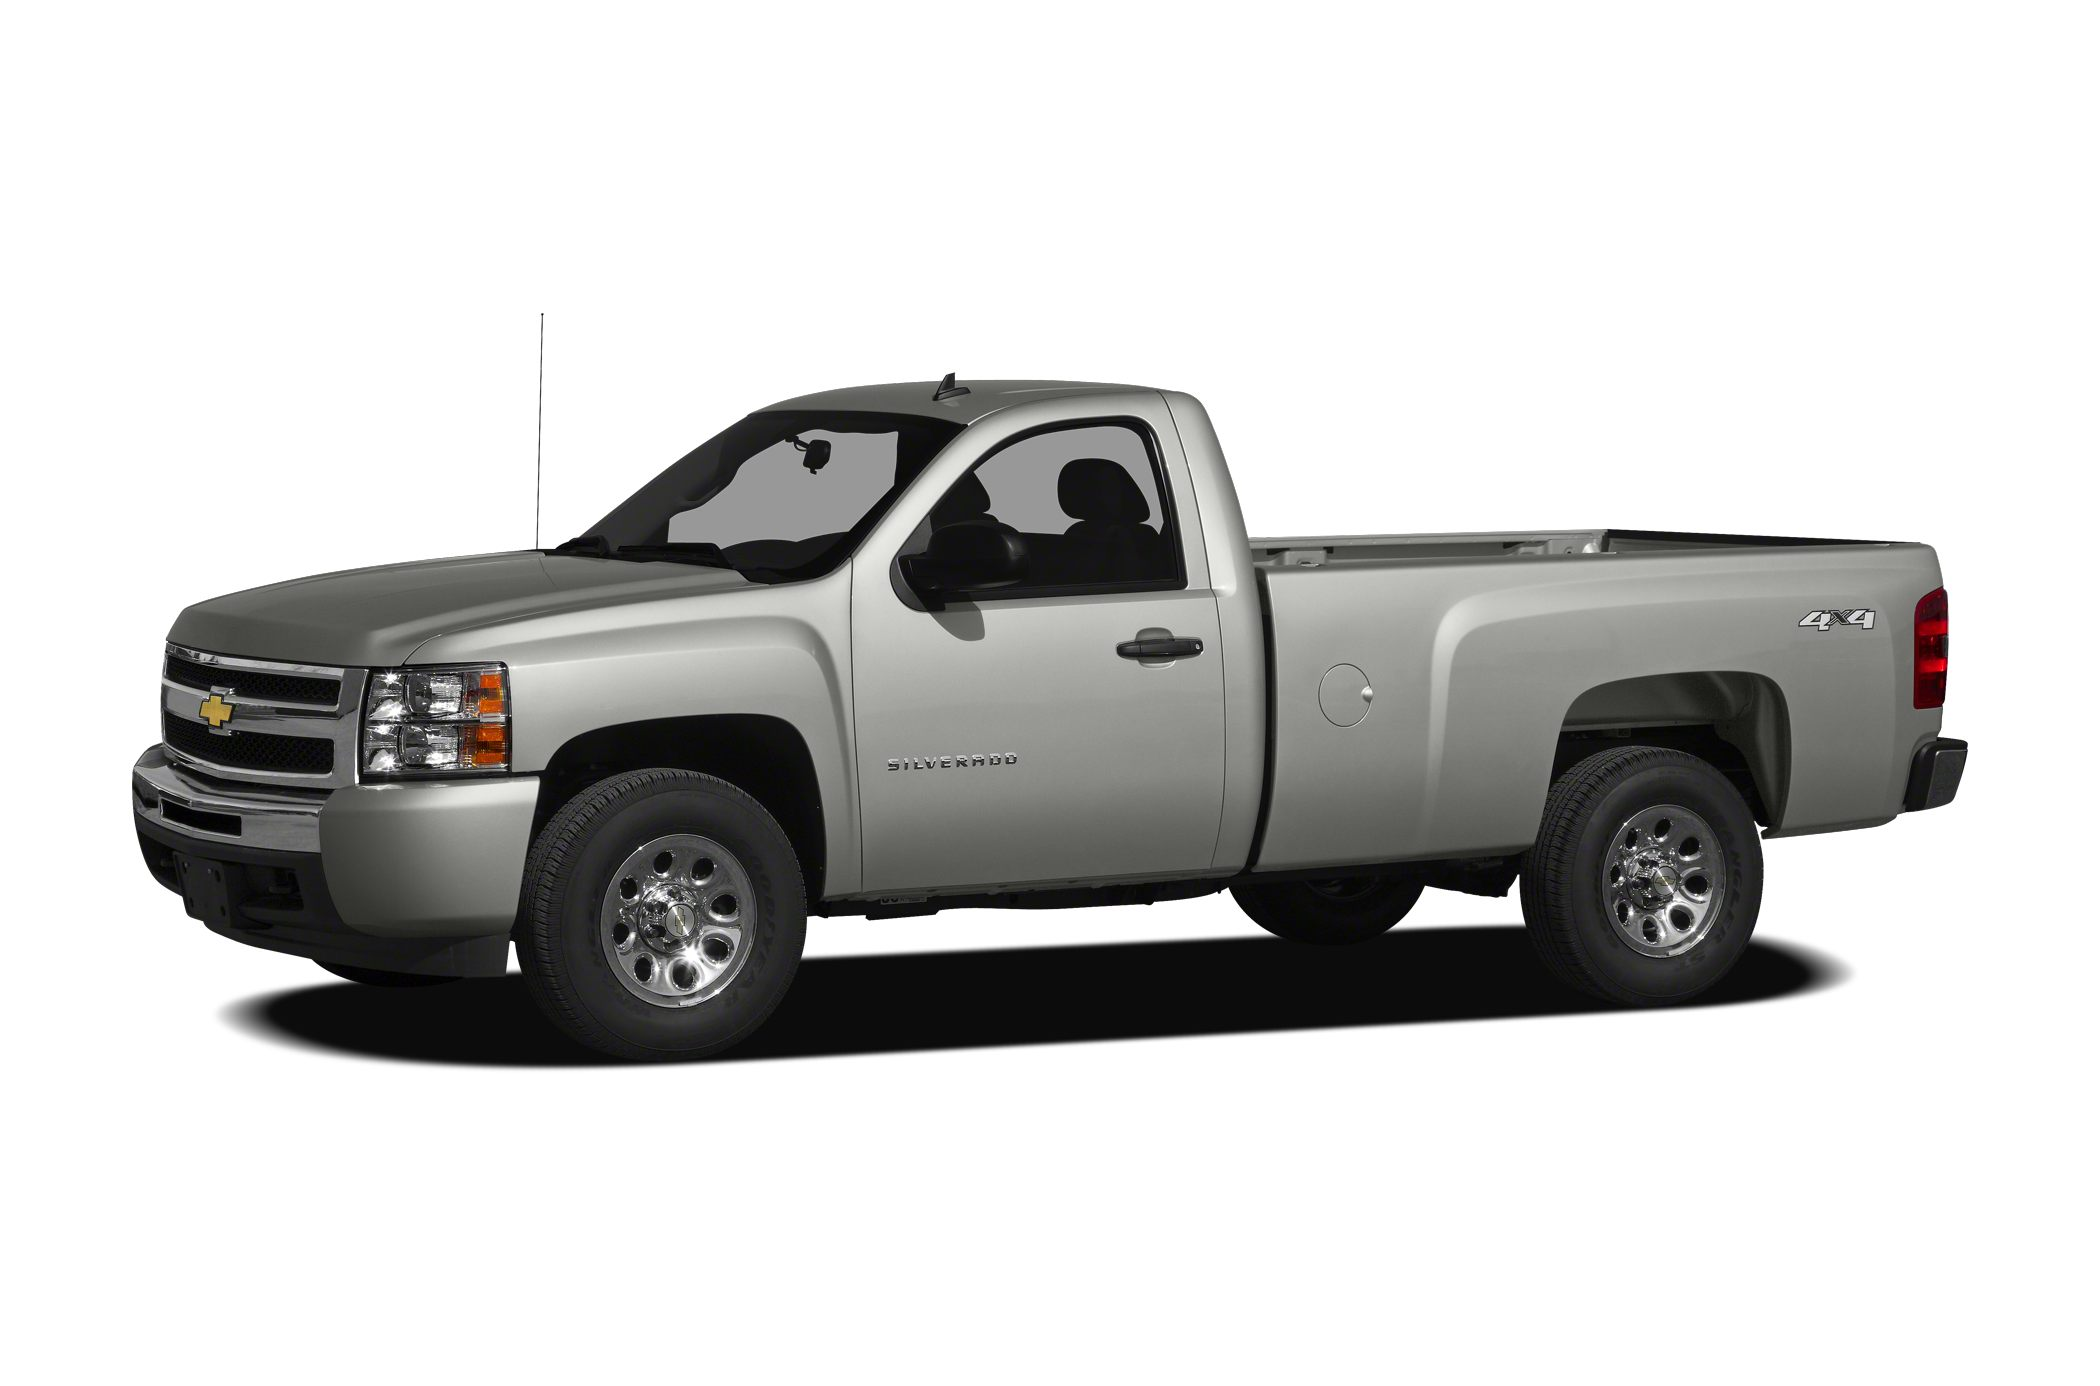 2009 Chevrolet Silverado 1500 LT Crew Cab Pickup for sale in Pueblo for $24,985 with 47,908 miles